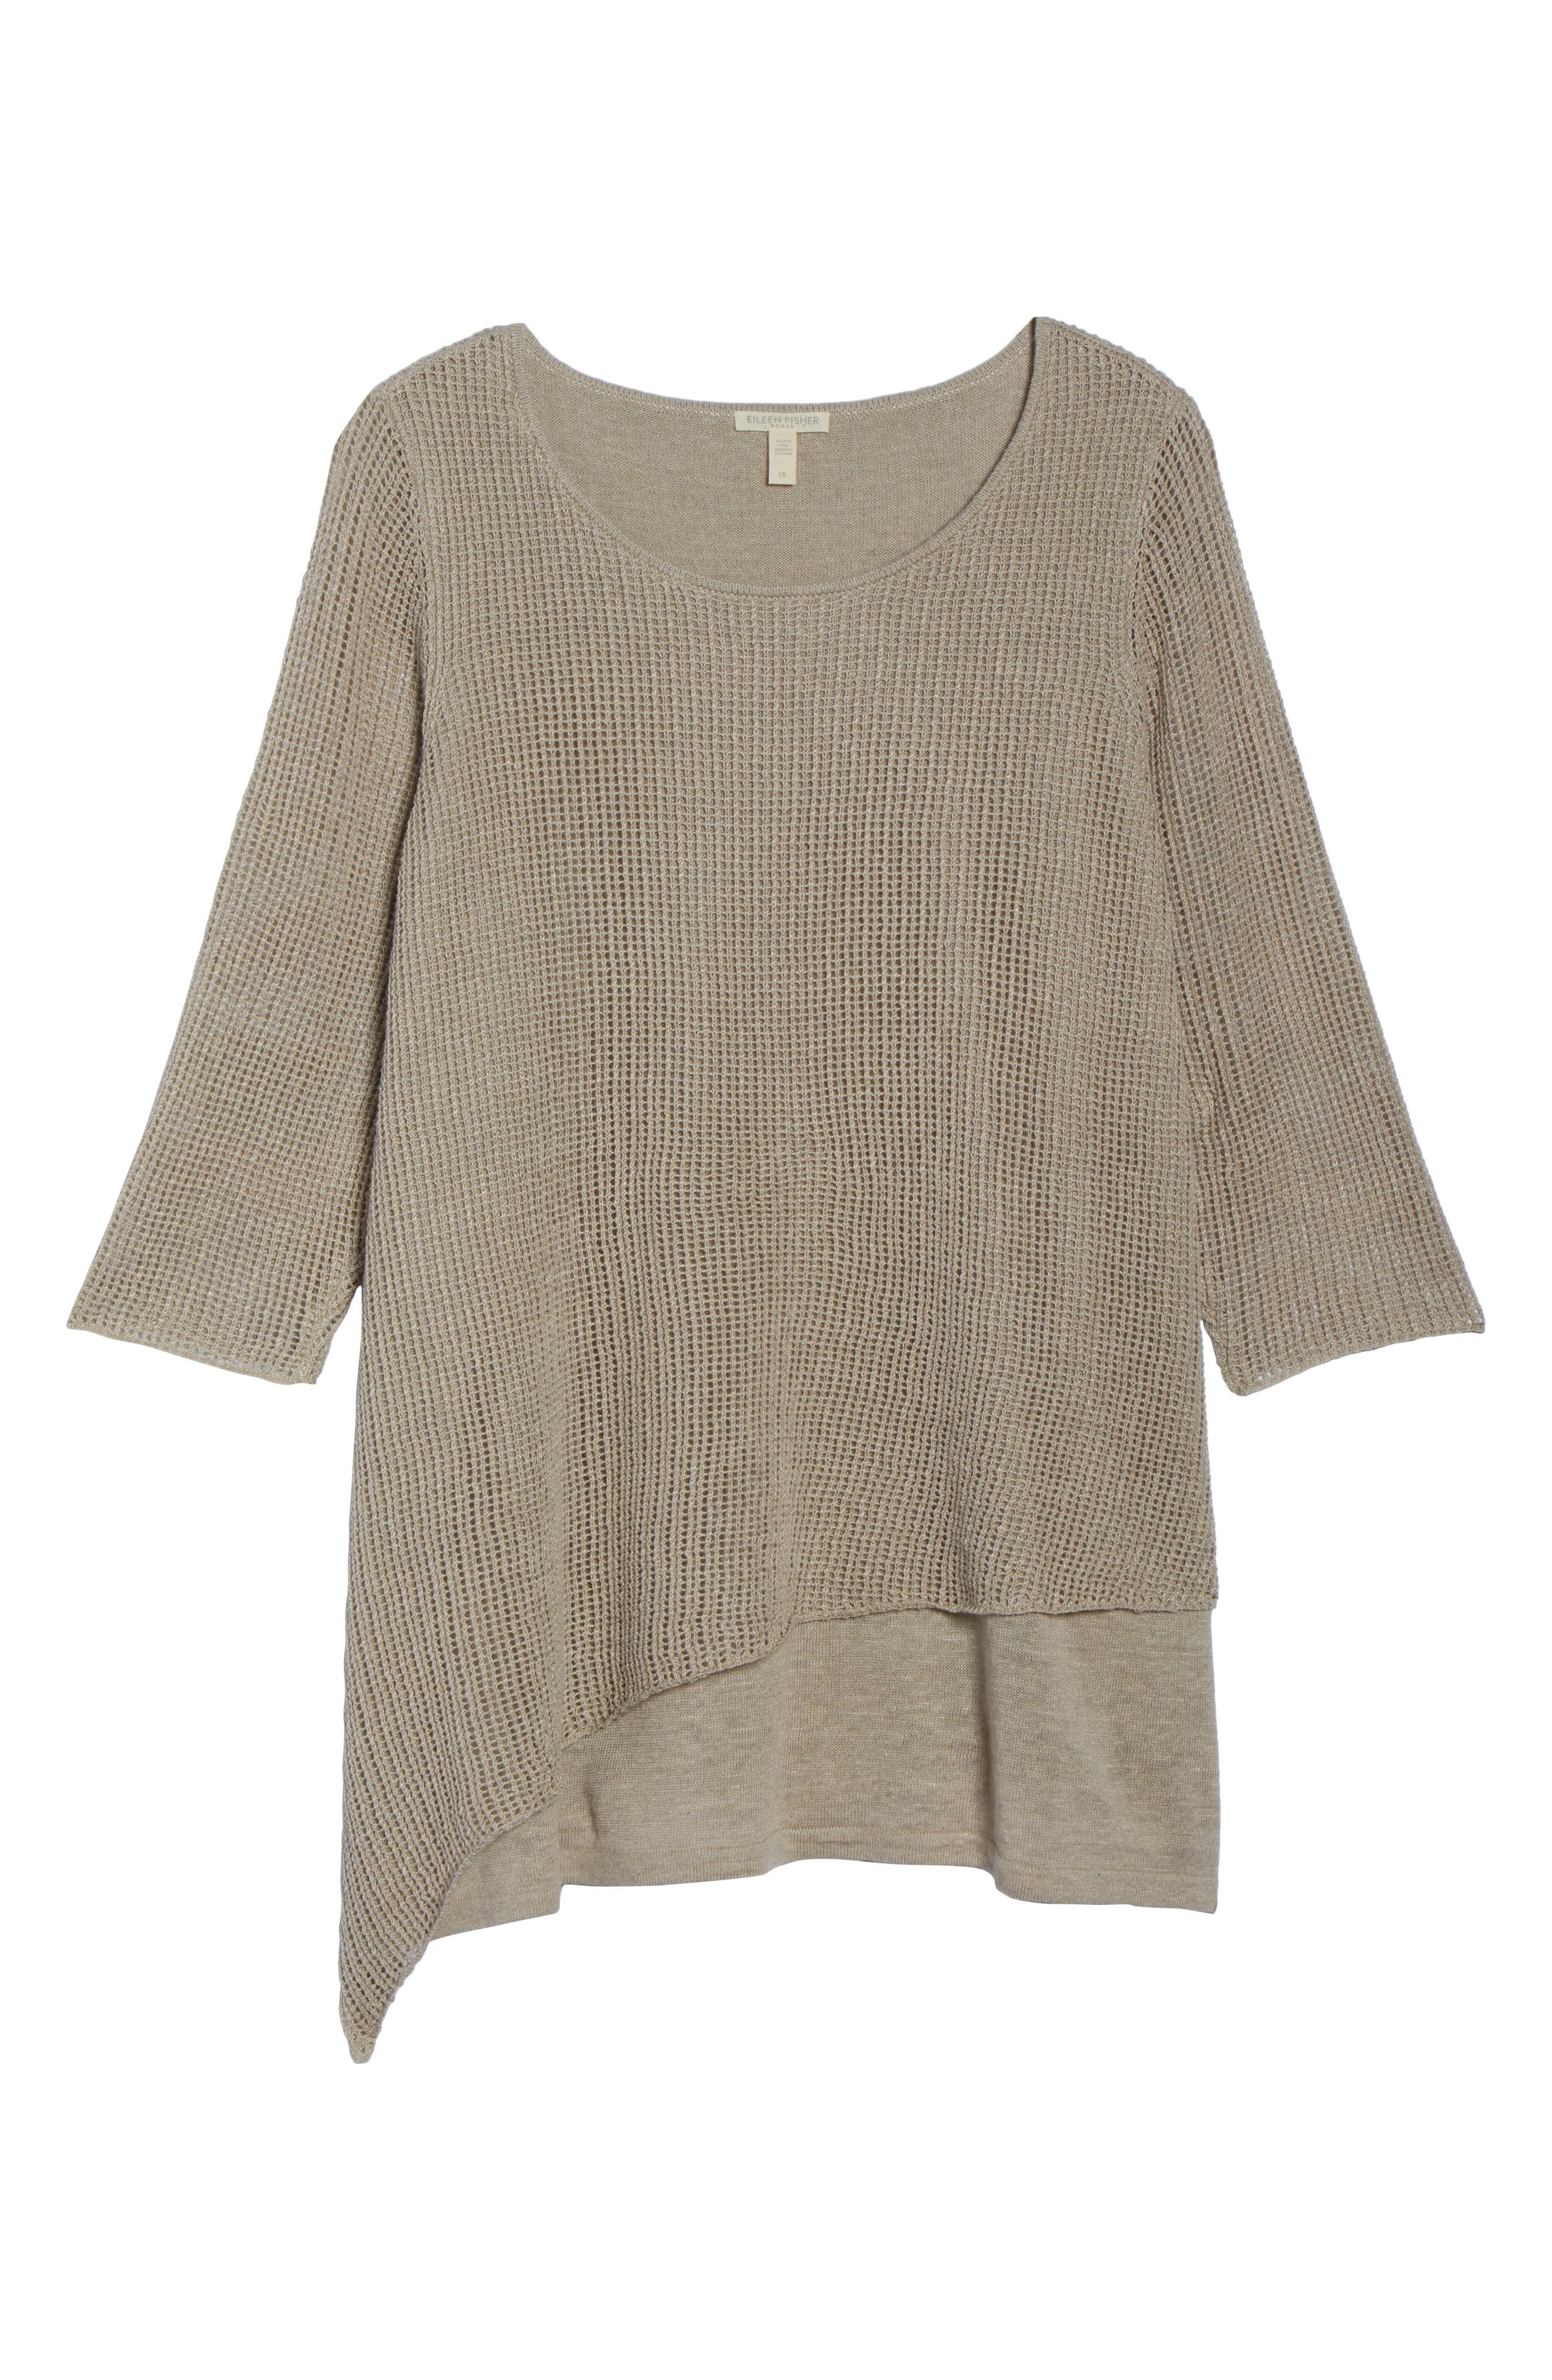 Layered Organic Linen Tunic Sweater,                             Alternate thumbnail 7, color,                             251